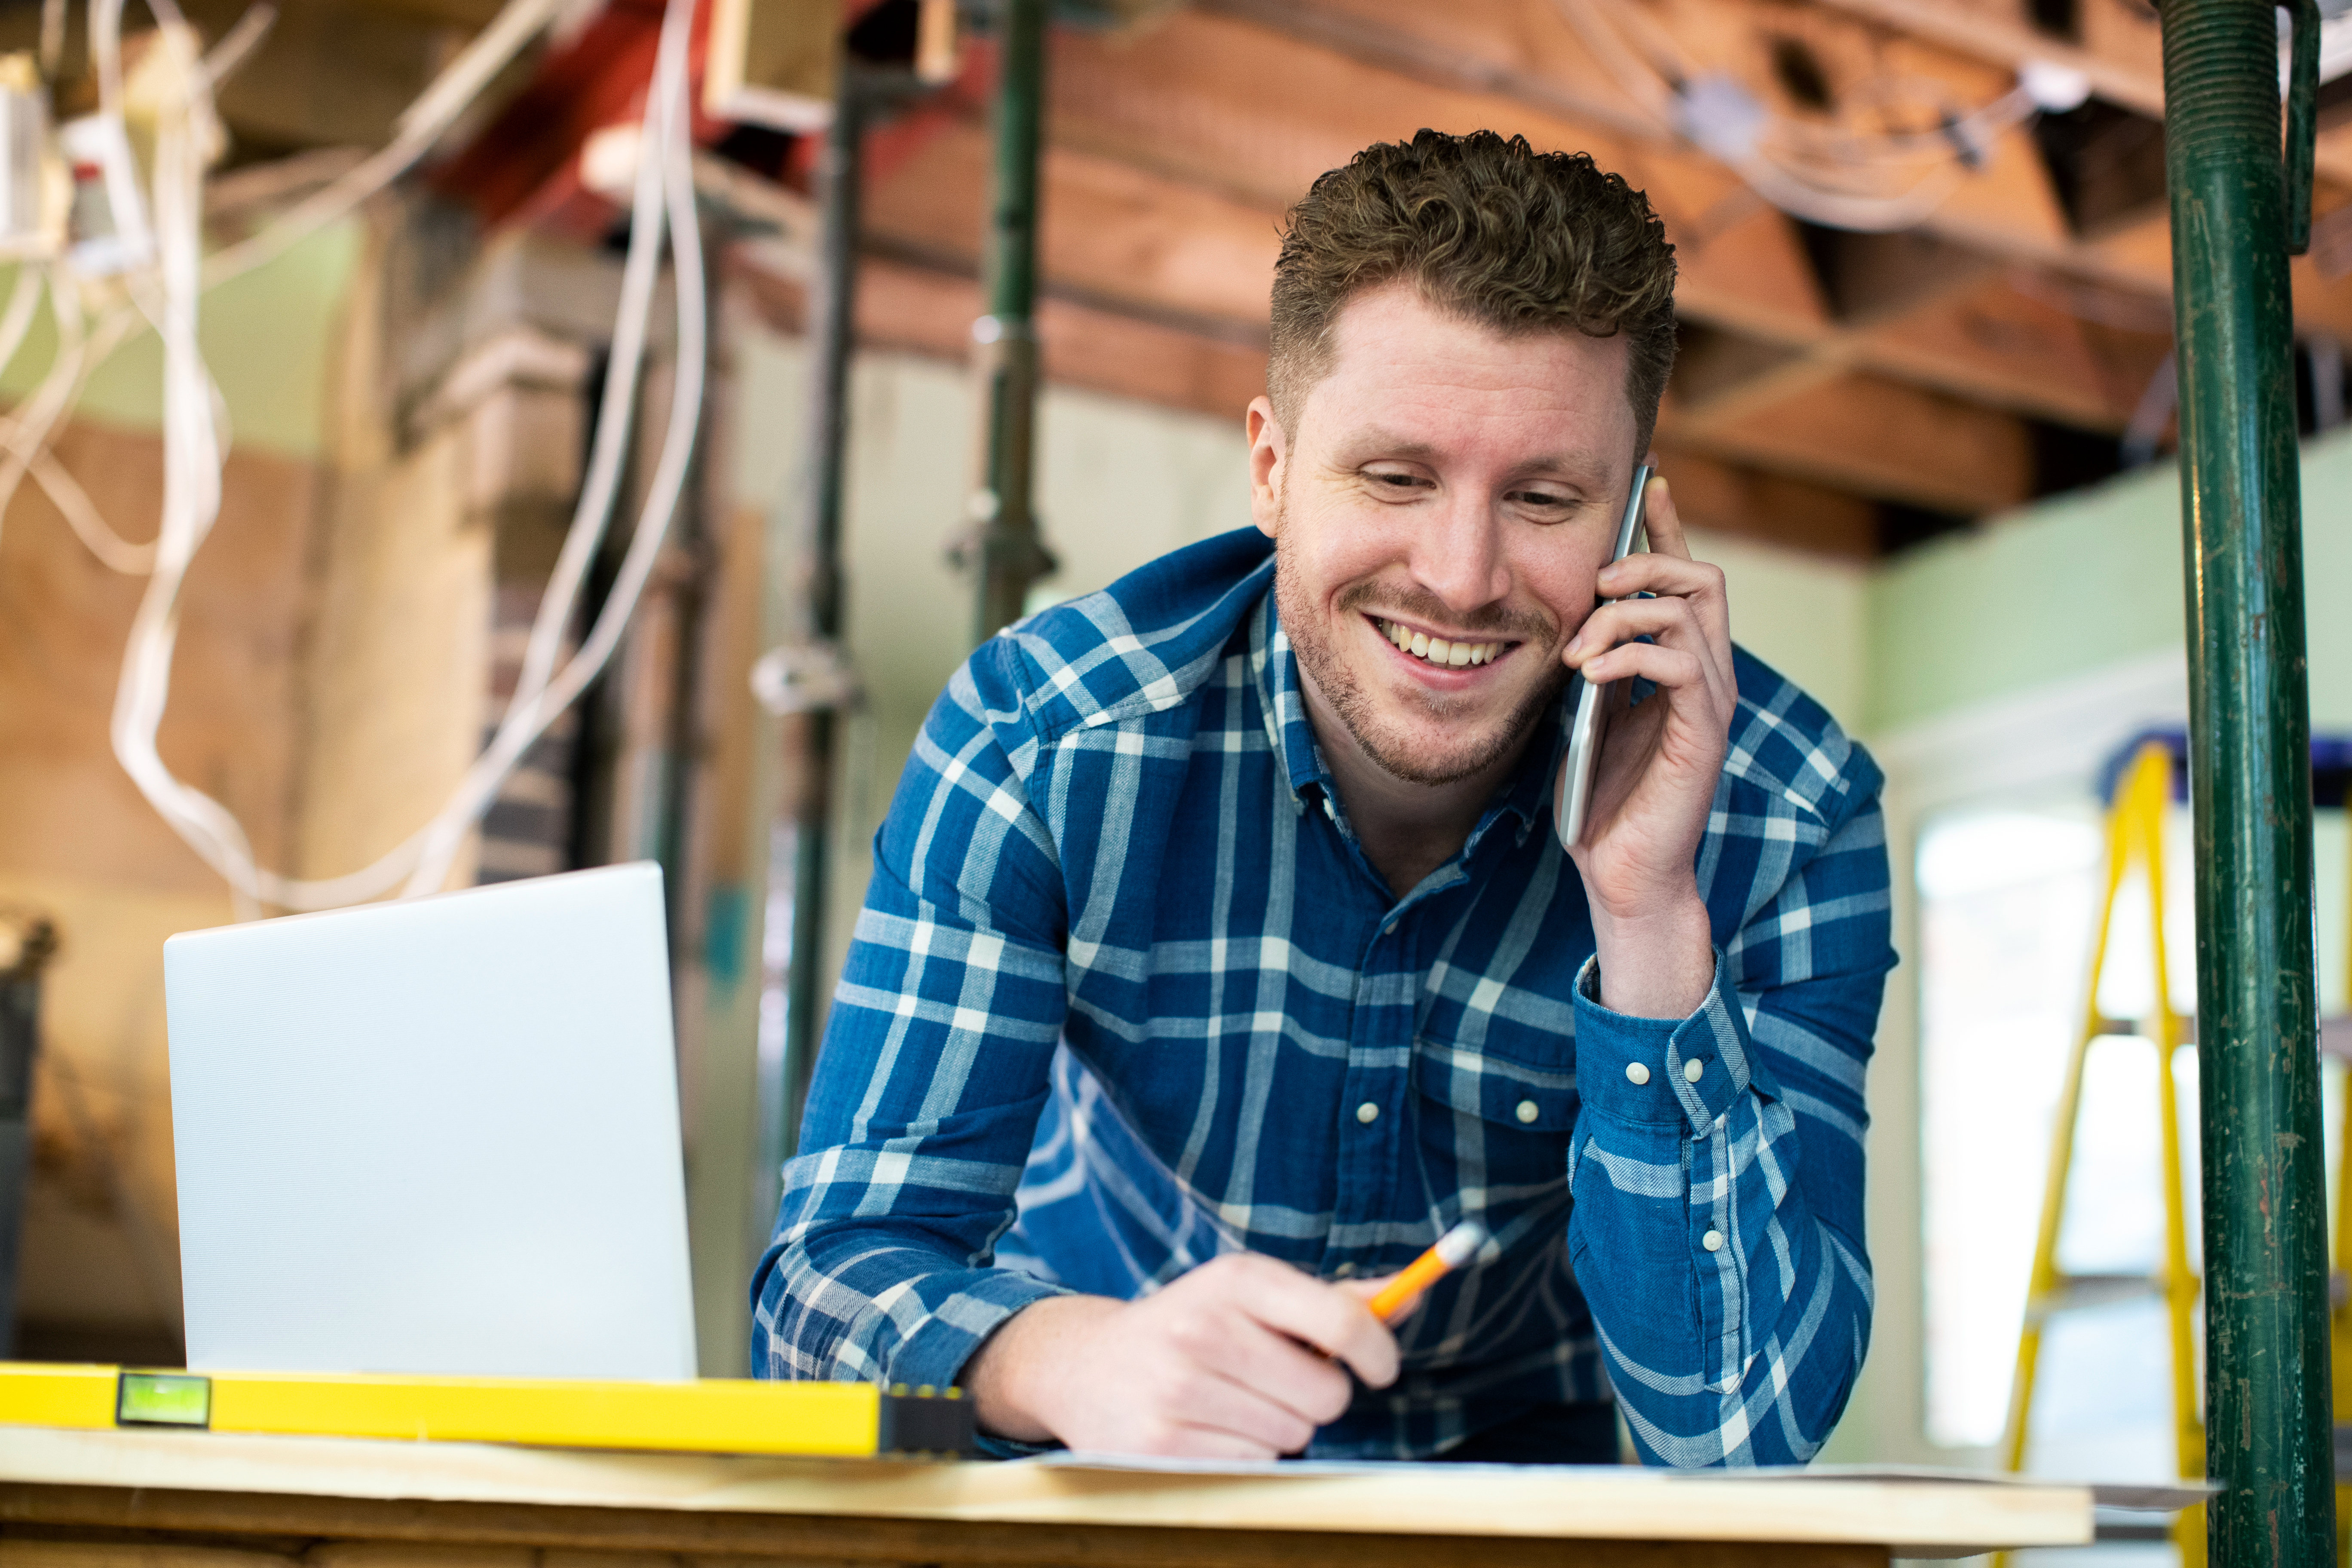 Architect Inside House Being Renovated Working On Plans Using Laptop And Talking On Cellphone